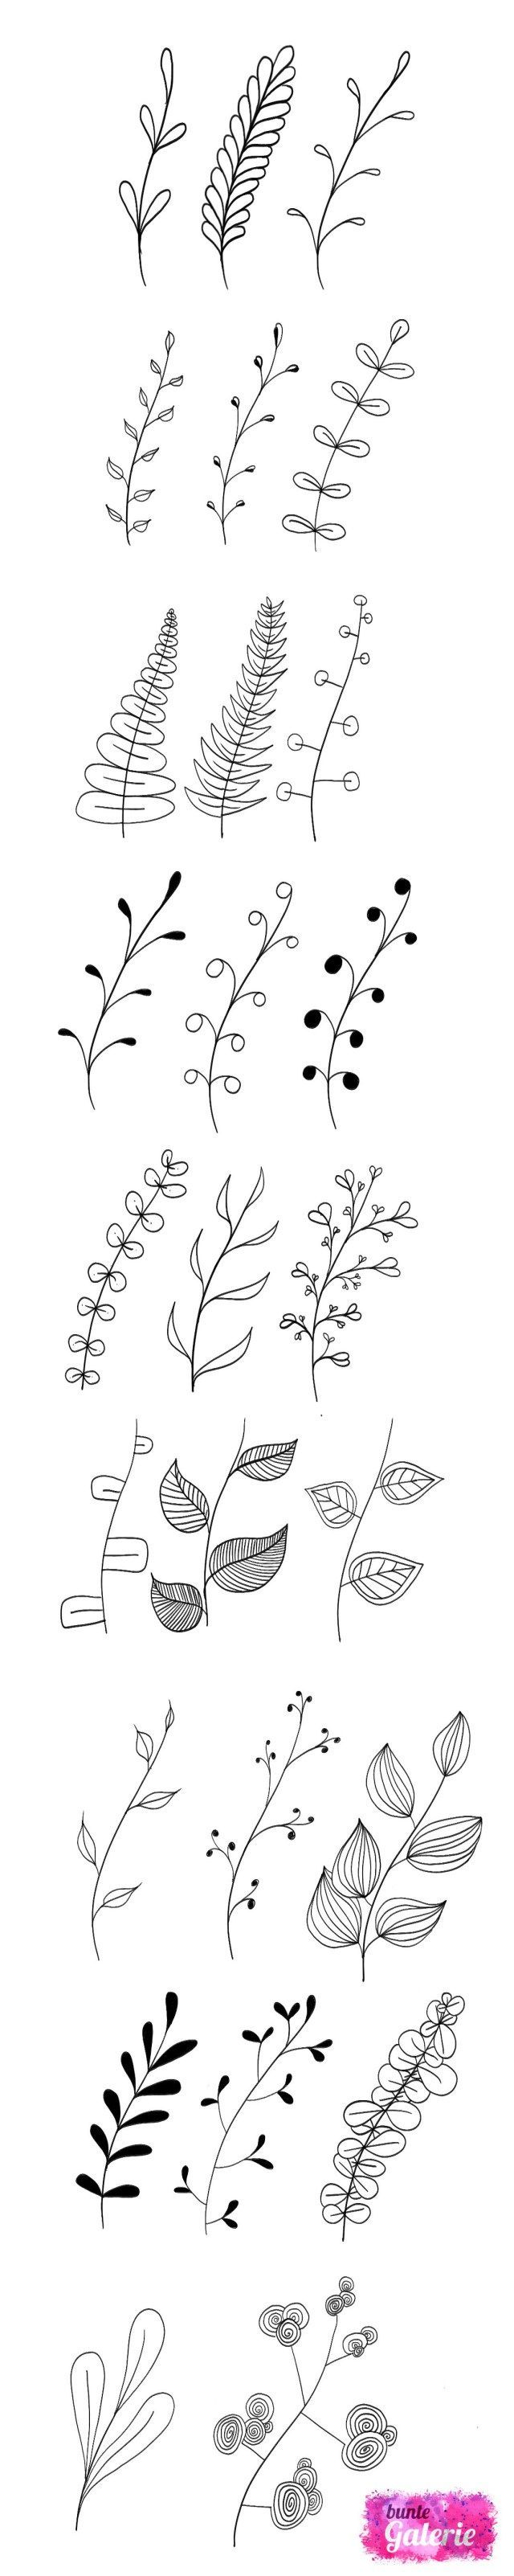 Hand draw floral elements | Perfect for Bullet Journals and planners | Doodles | Sketchbook ideas